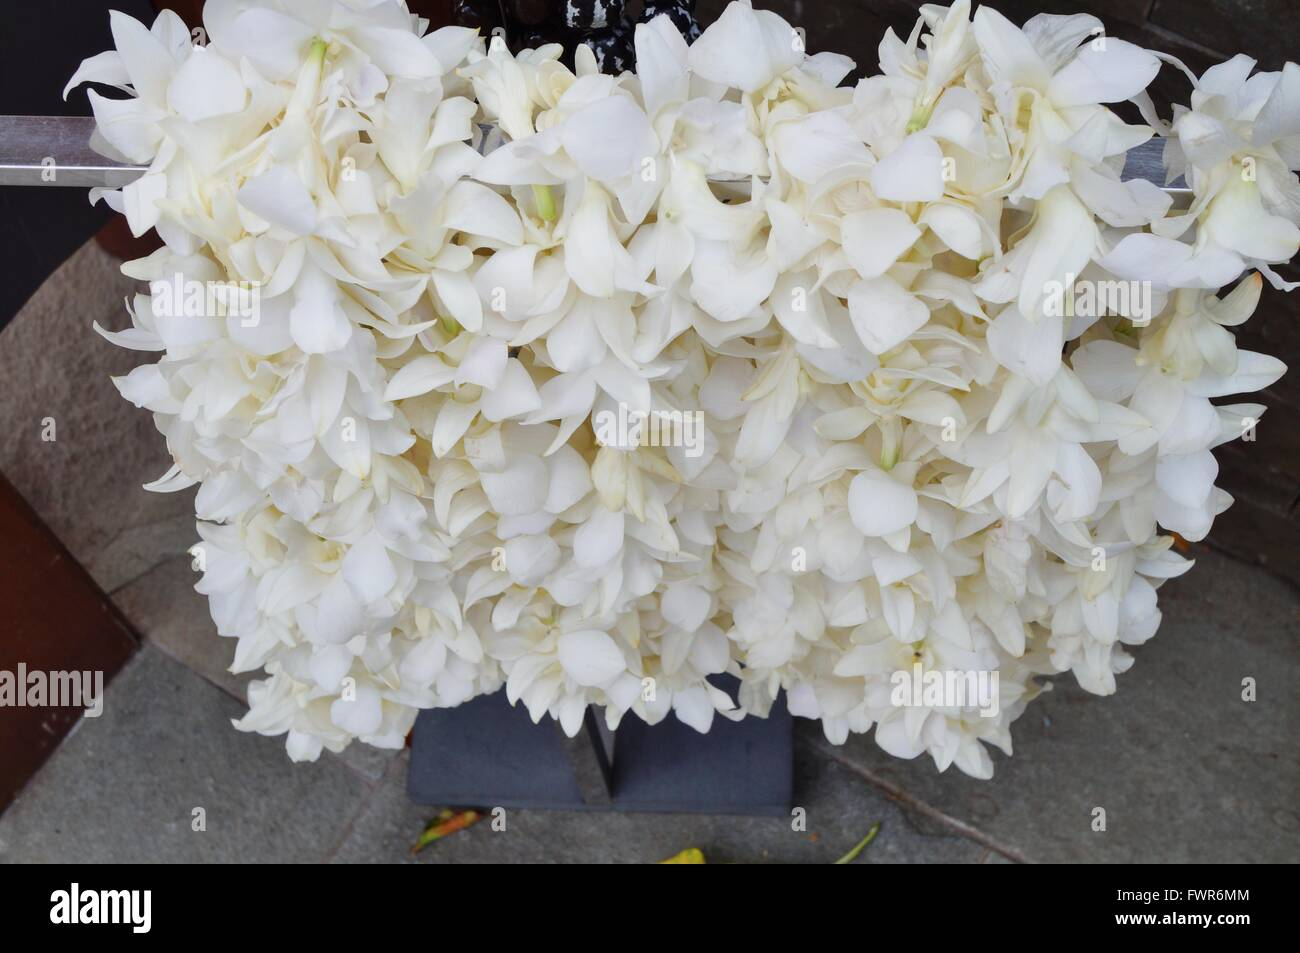 Generous white flower lei images wedding and flowers ispiration famous white flower lei images wedding and flowers ispiration mightylinksfo Images